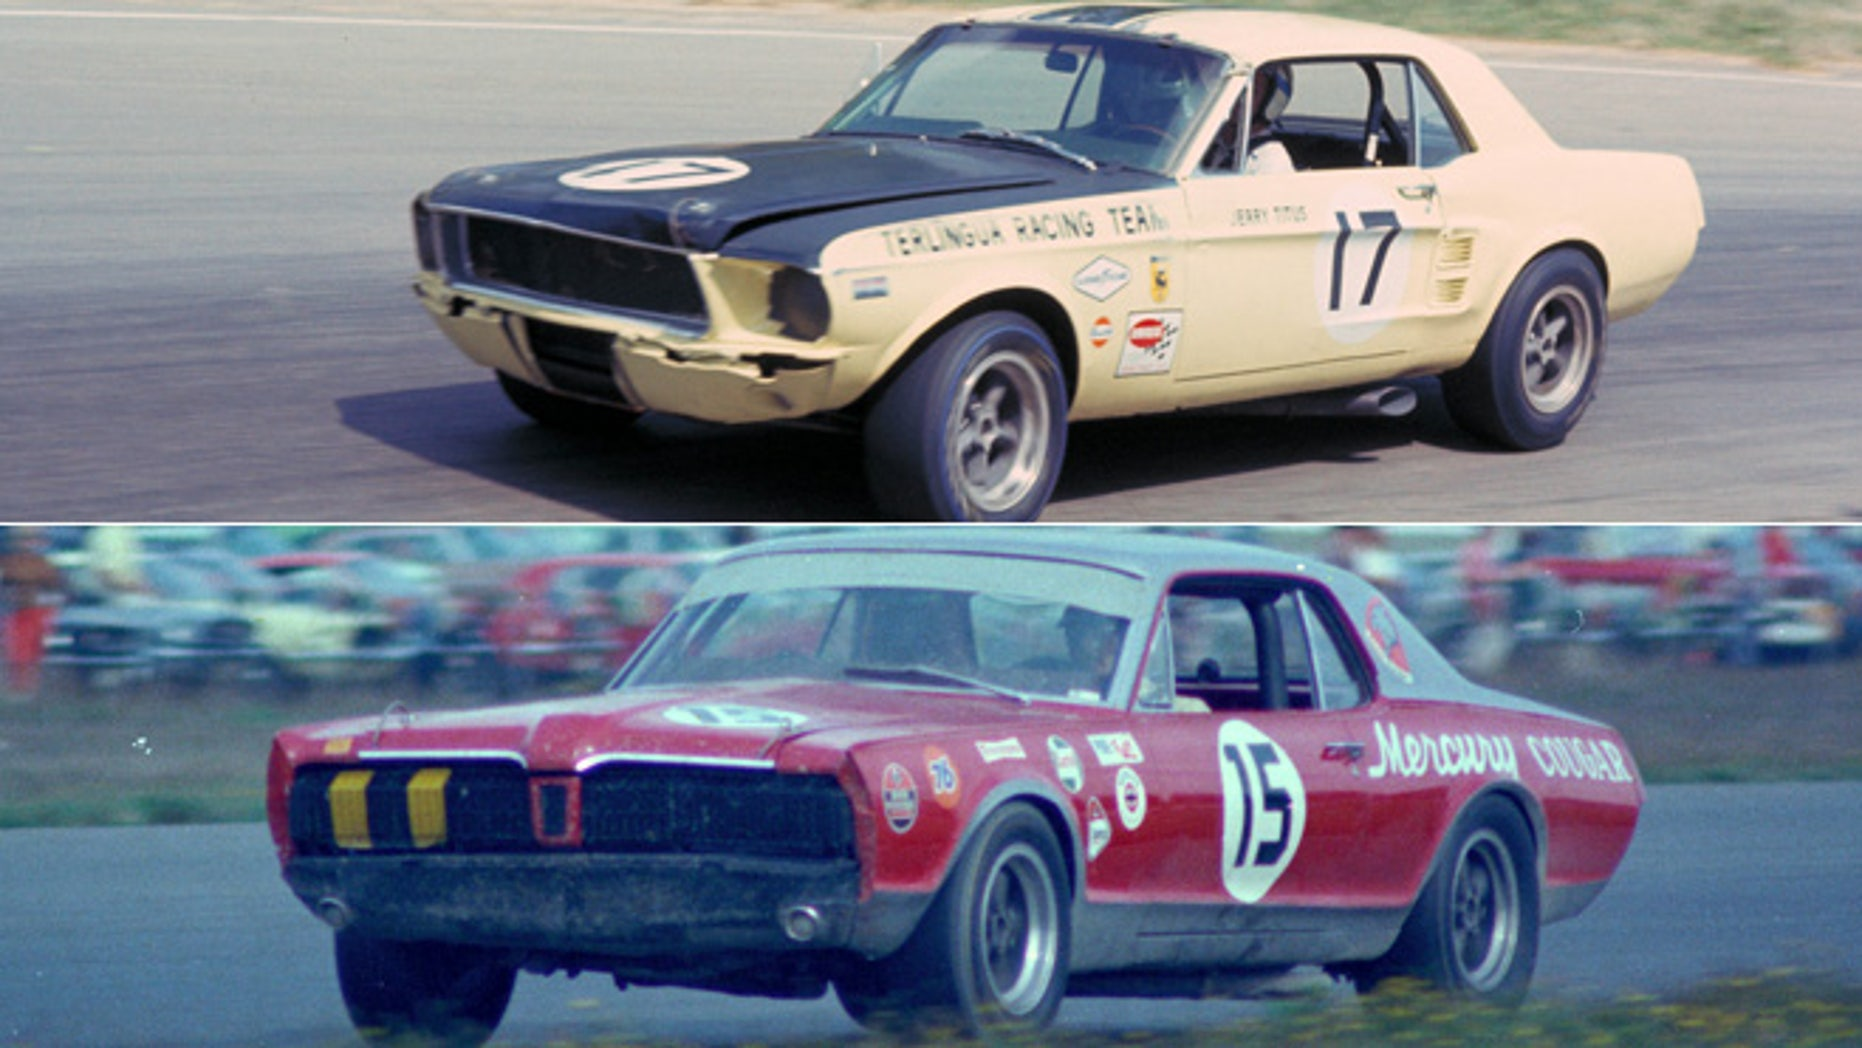 Racing versions of the 1967 Ford Mustang (top) and Mercury Cougar (bottom)